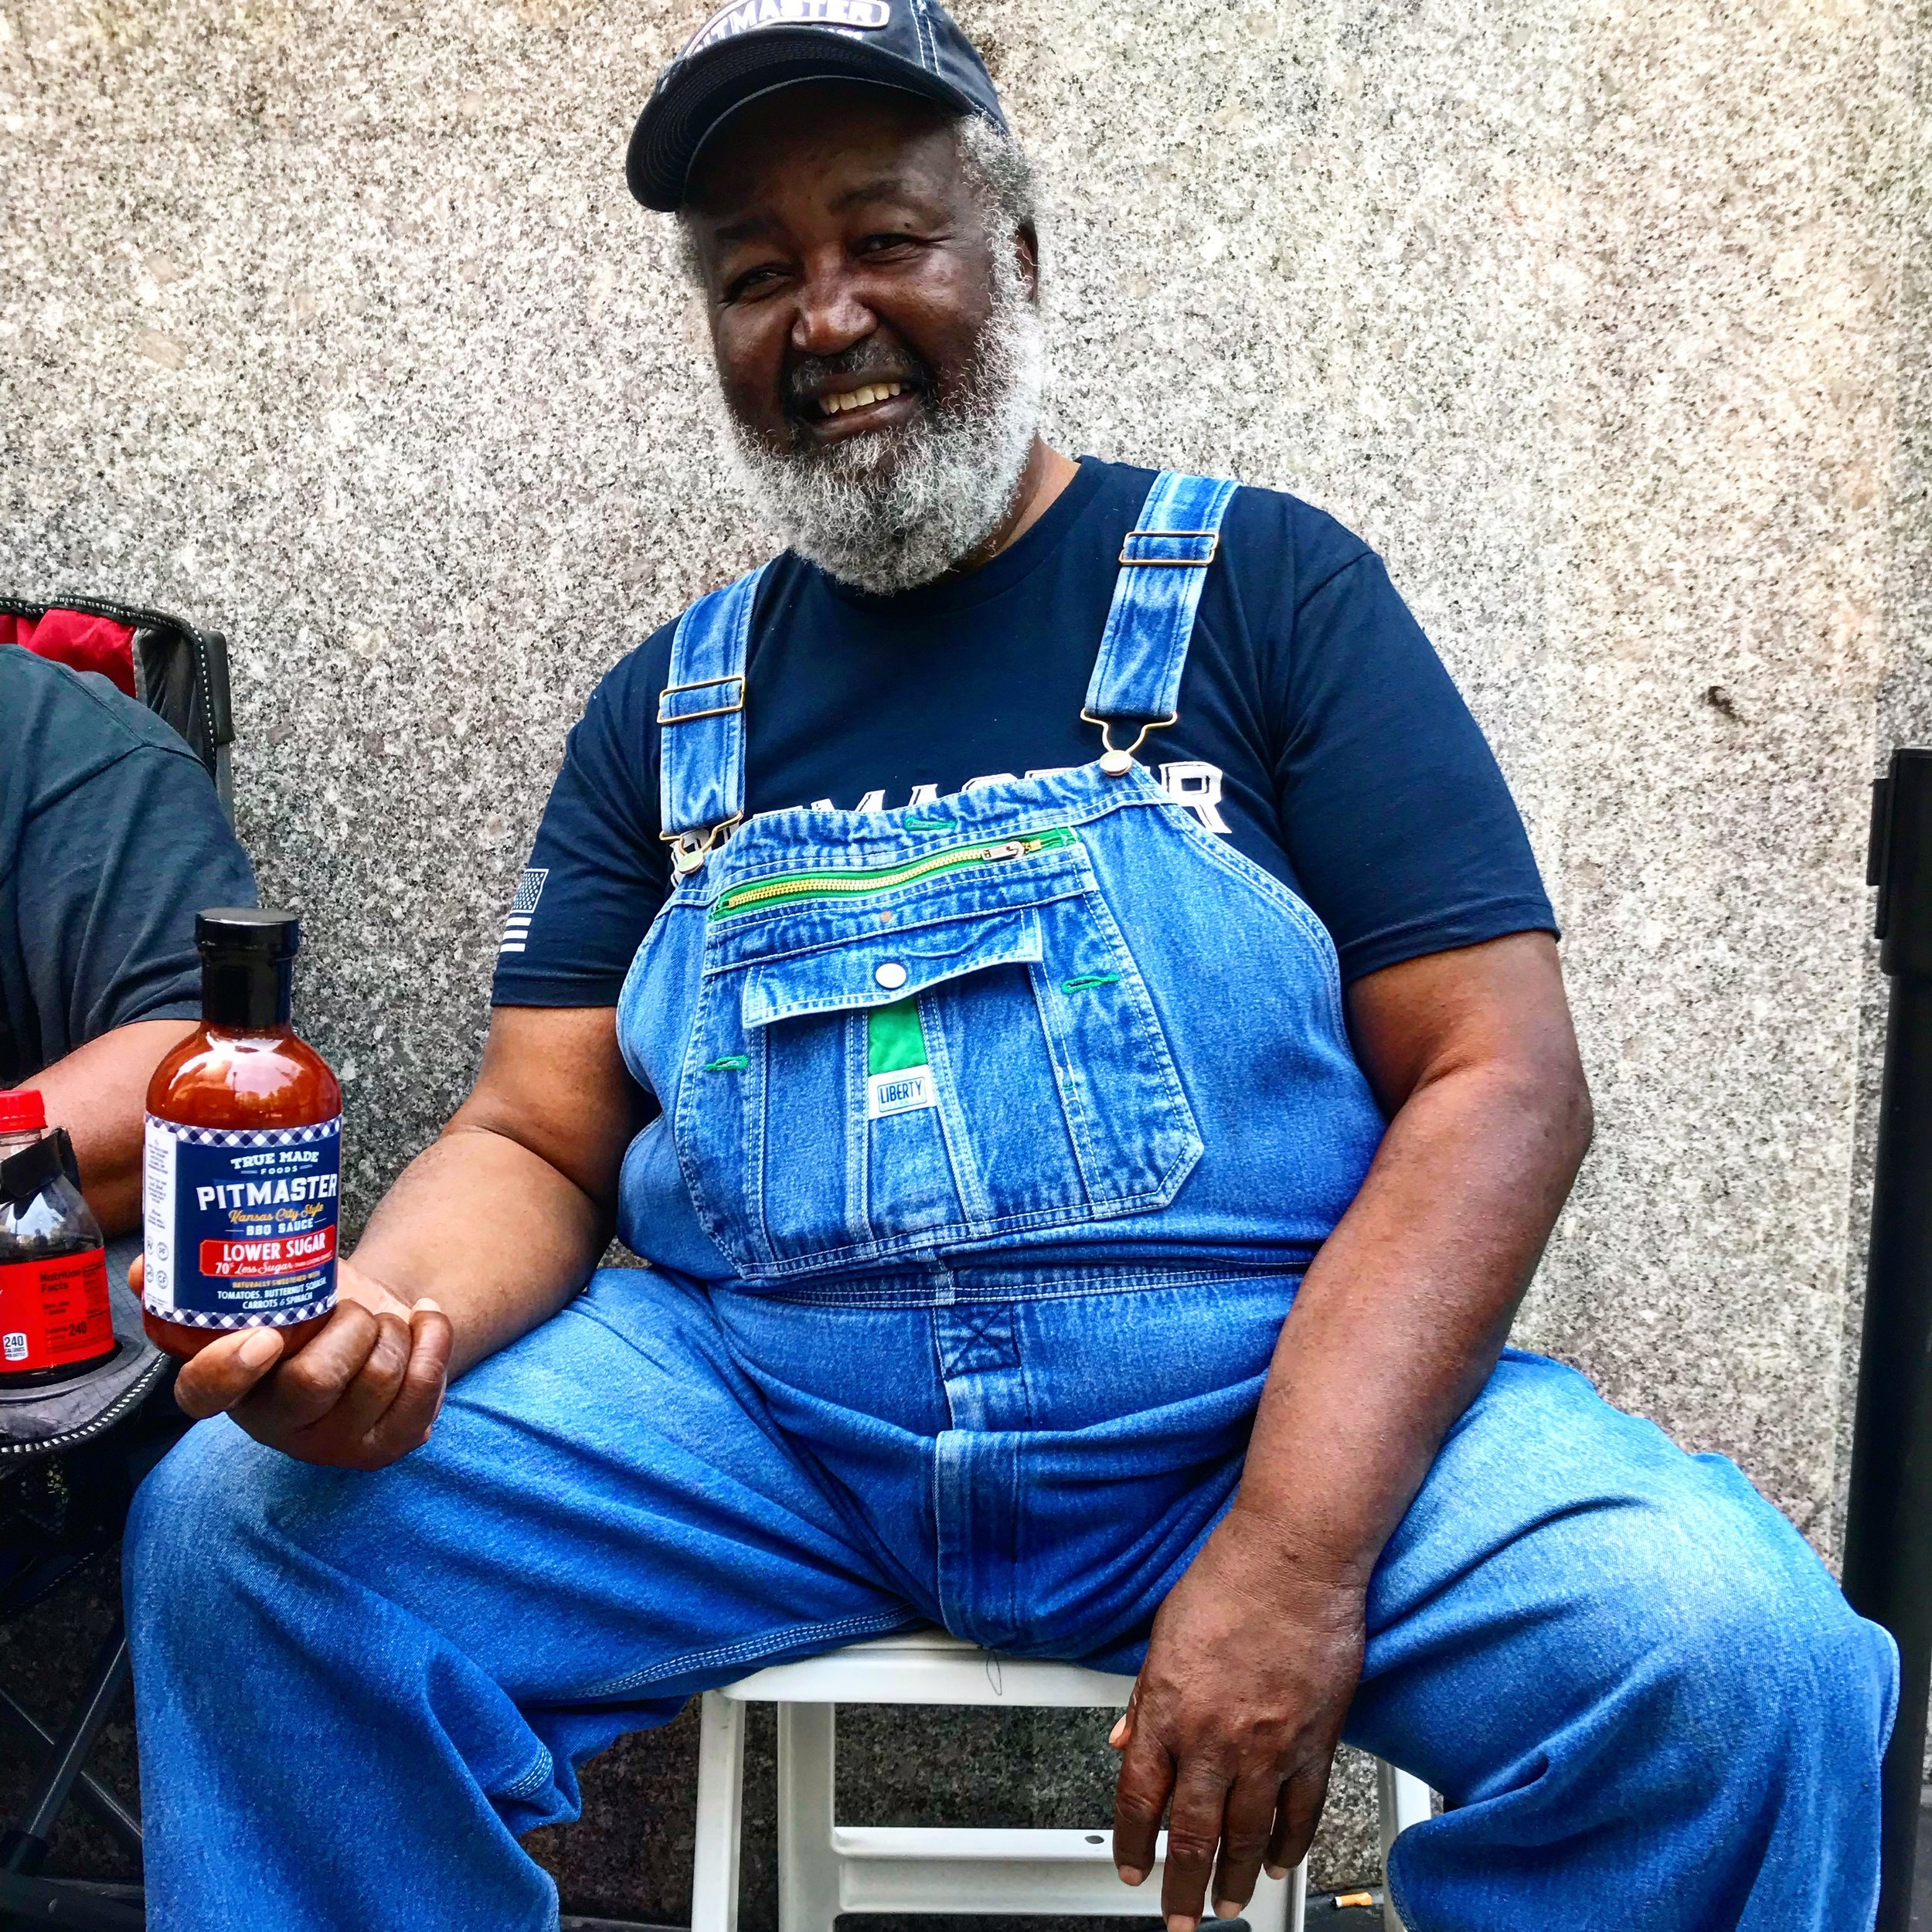 Ed Mitchell himself and True Made Foods' Pitmaster BBQ Sauce